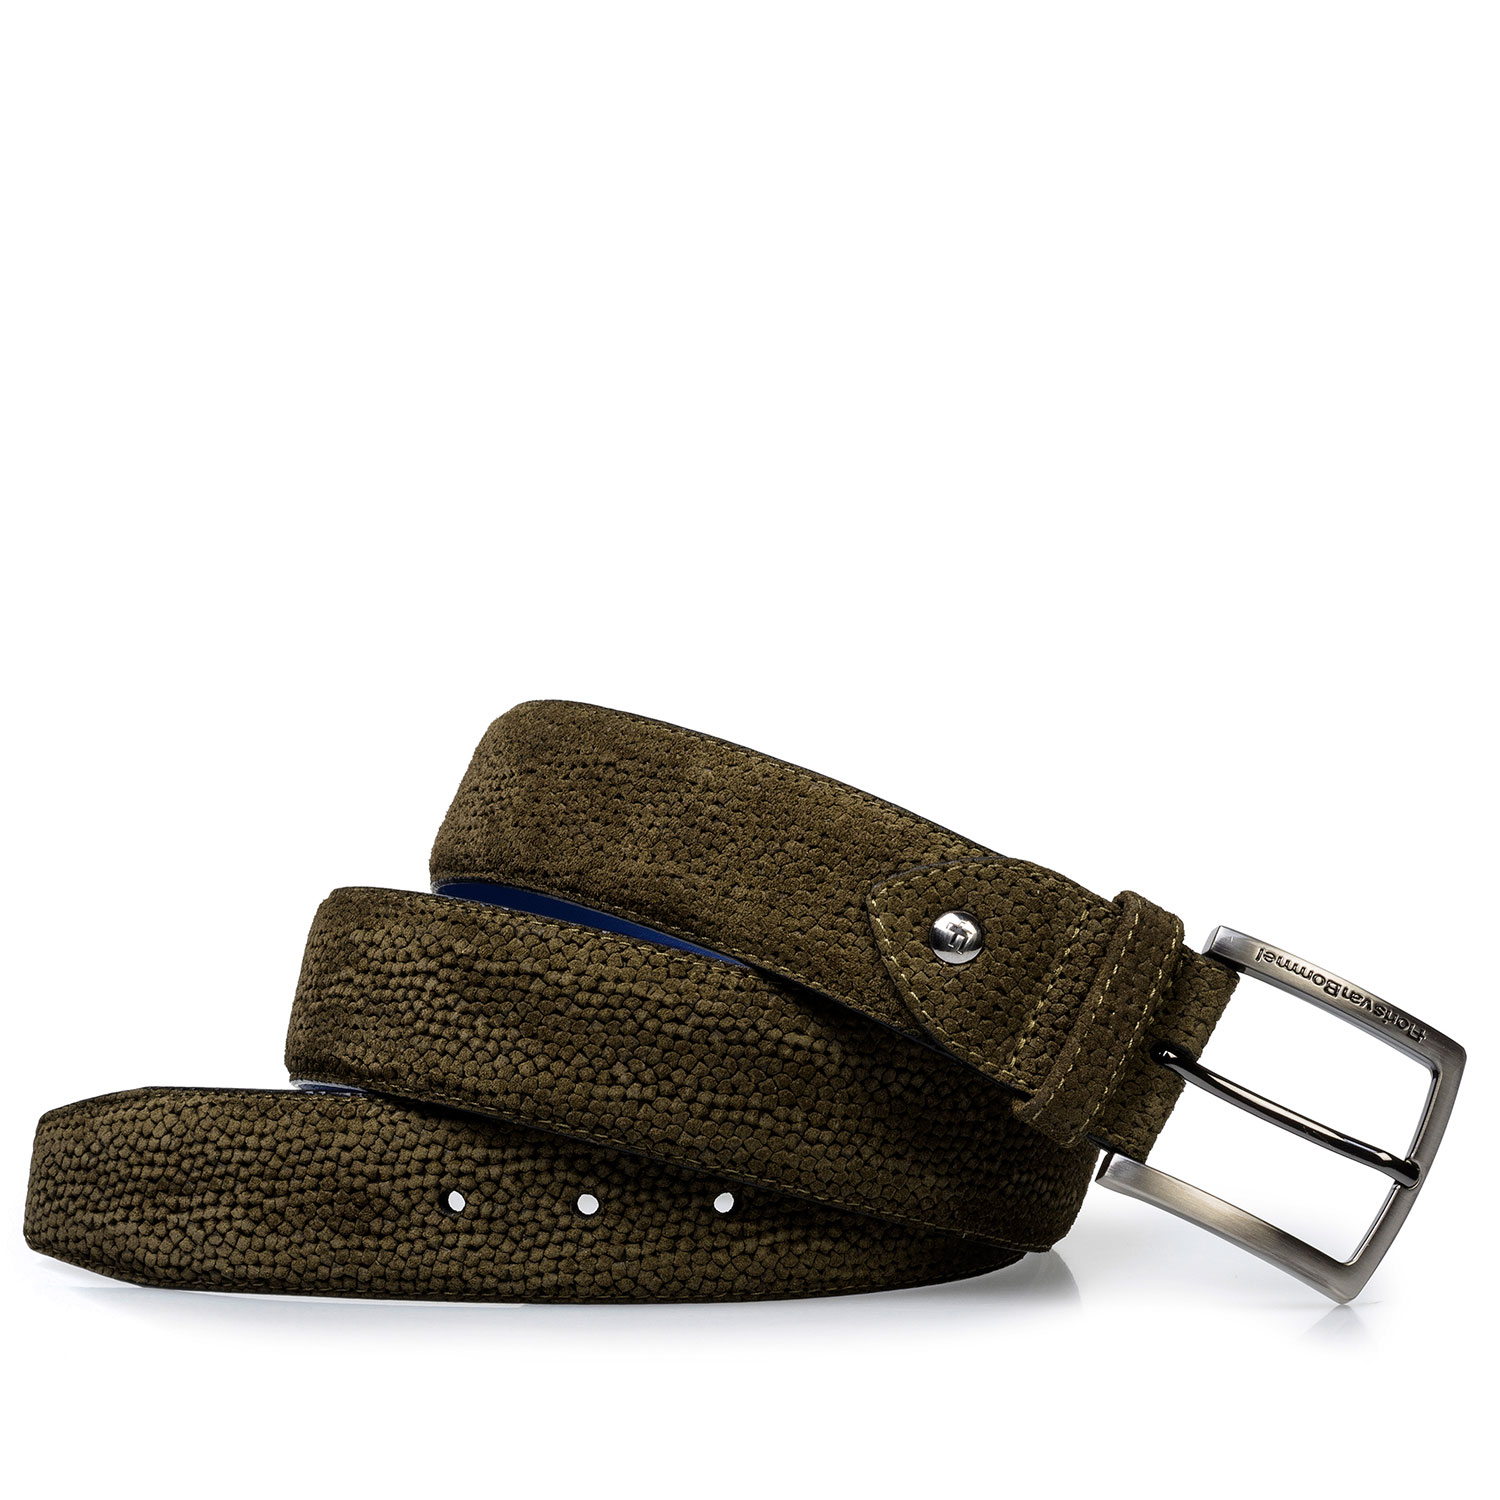 75202/21 - Olive green suede leather belt with print